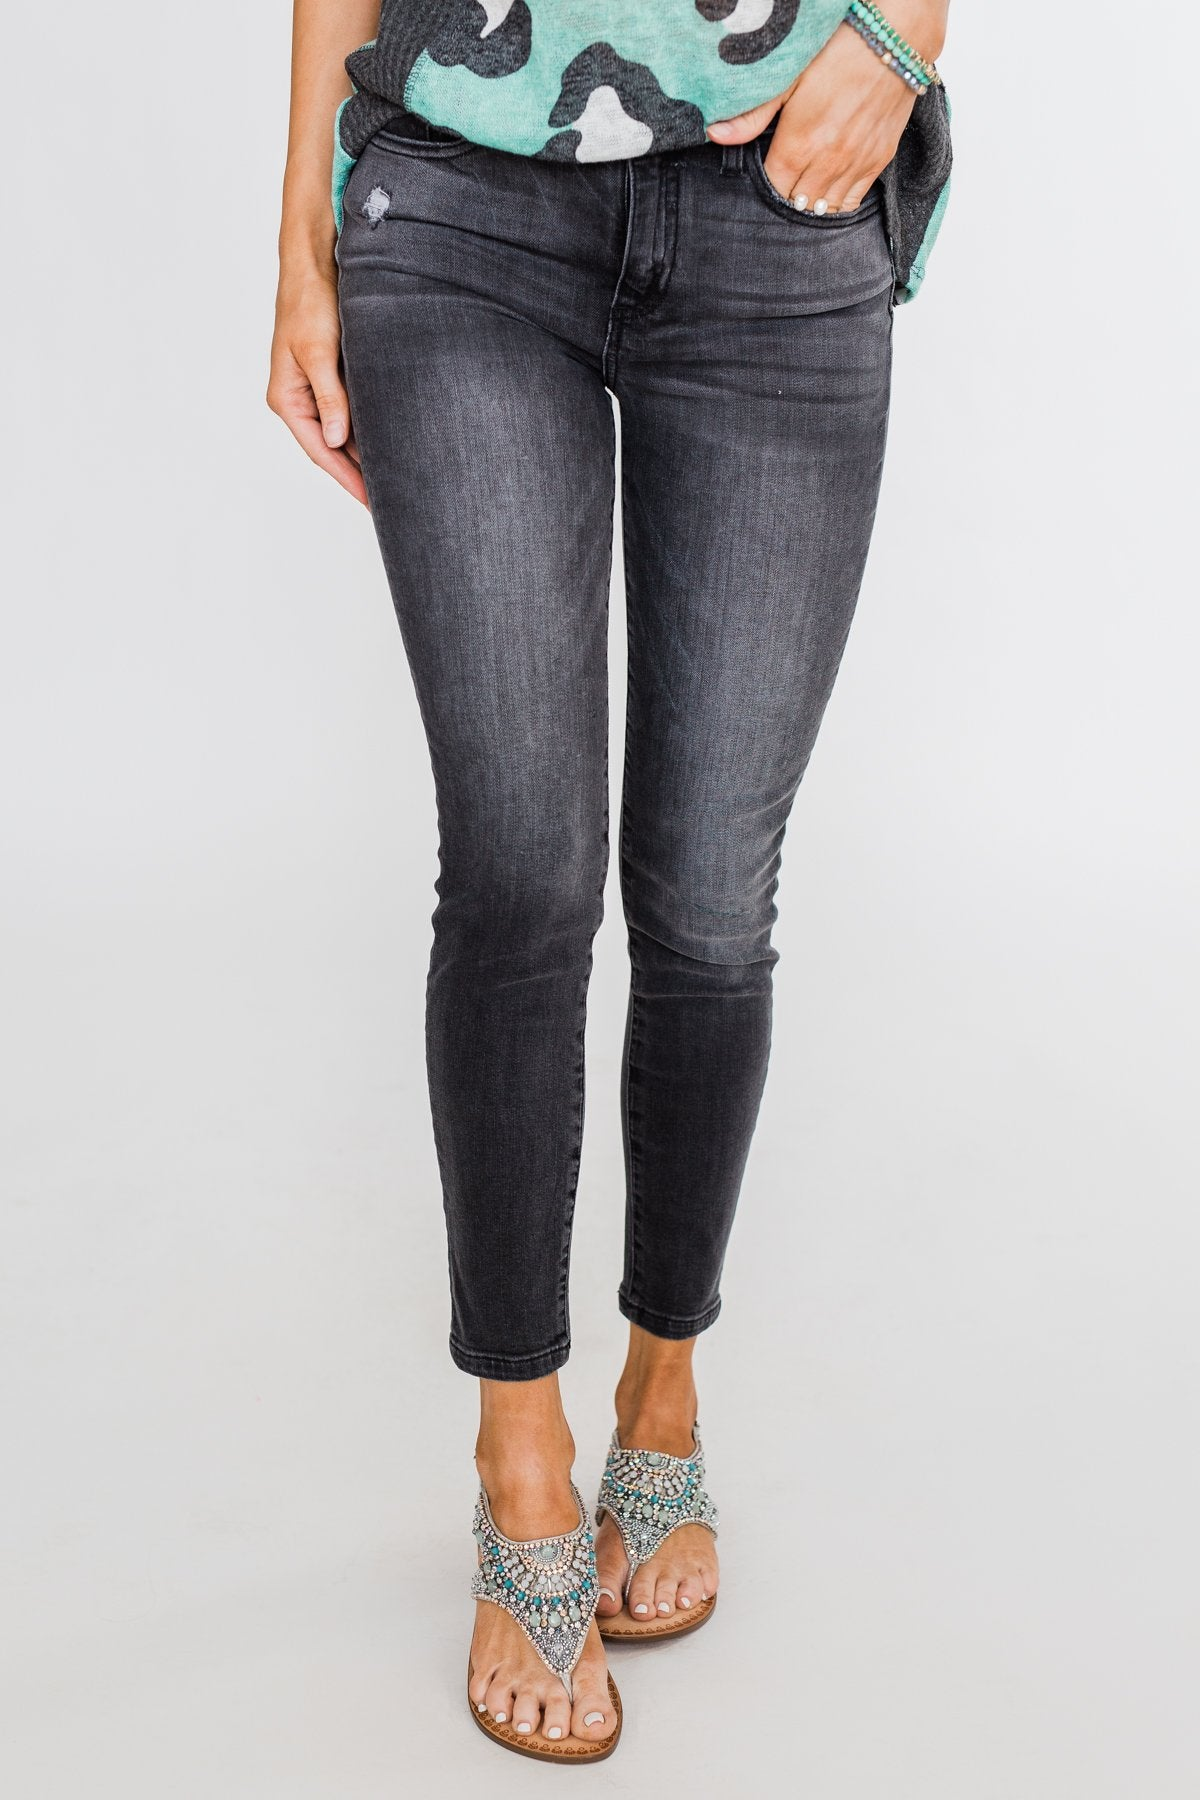 Sneak Peek Jeans- Madelyn Wash